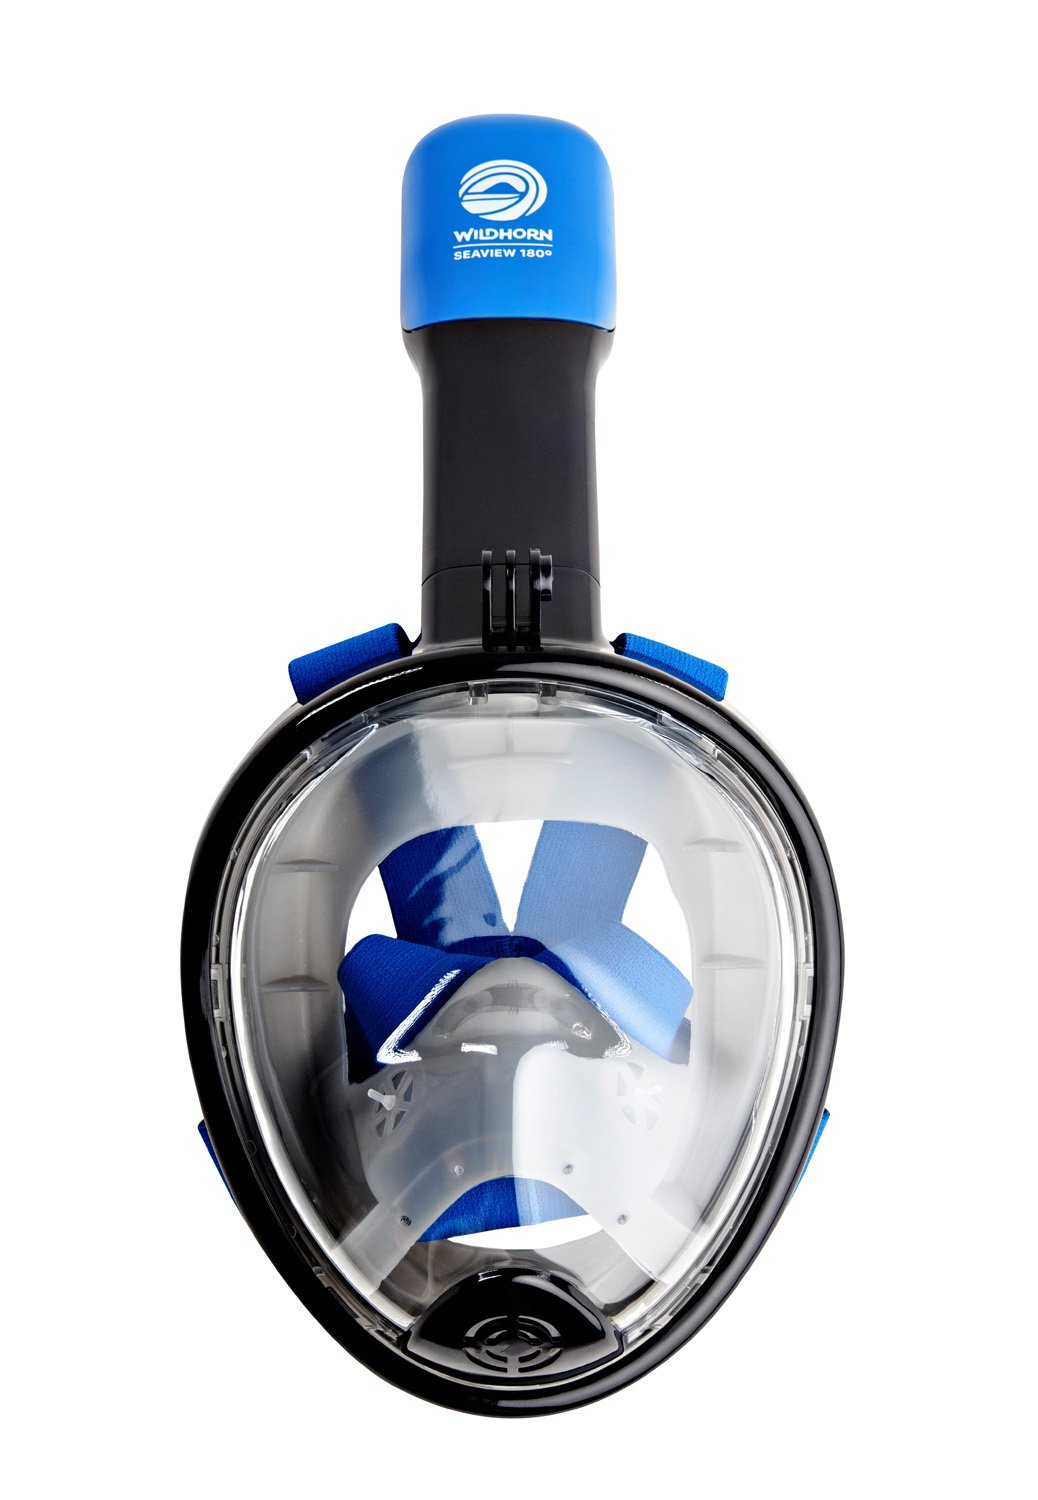 Seaview 180° GoPro Compatible Snorkel Mask- Panoramic Full Face Design. See More With Larger Viewing Area Than Traditional Masks. Prevents Gag Reflex with Tubeless Design (Navy, XS) by WildHorn Outfitters (Image #4)